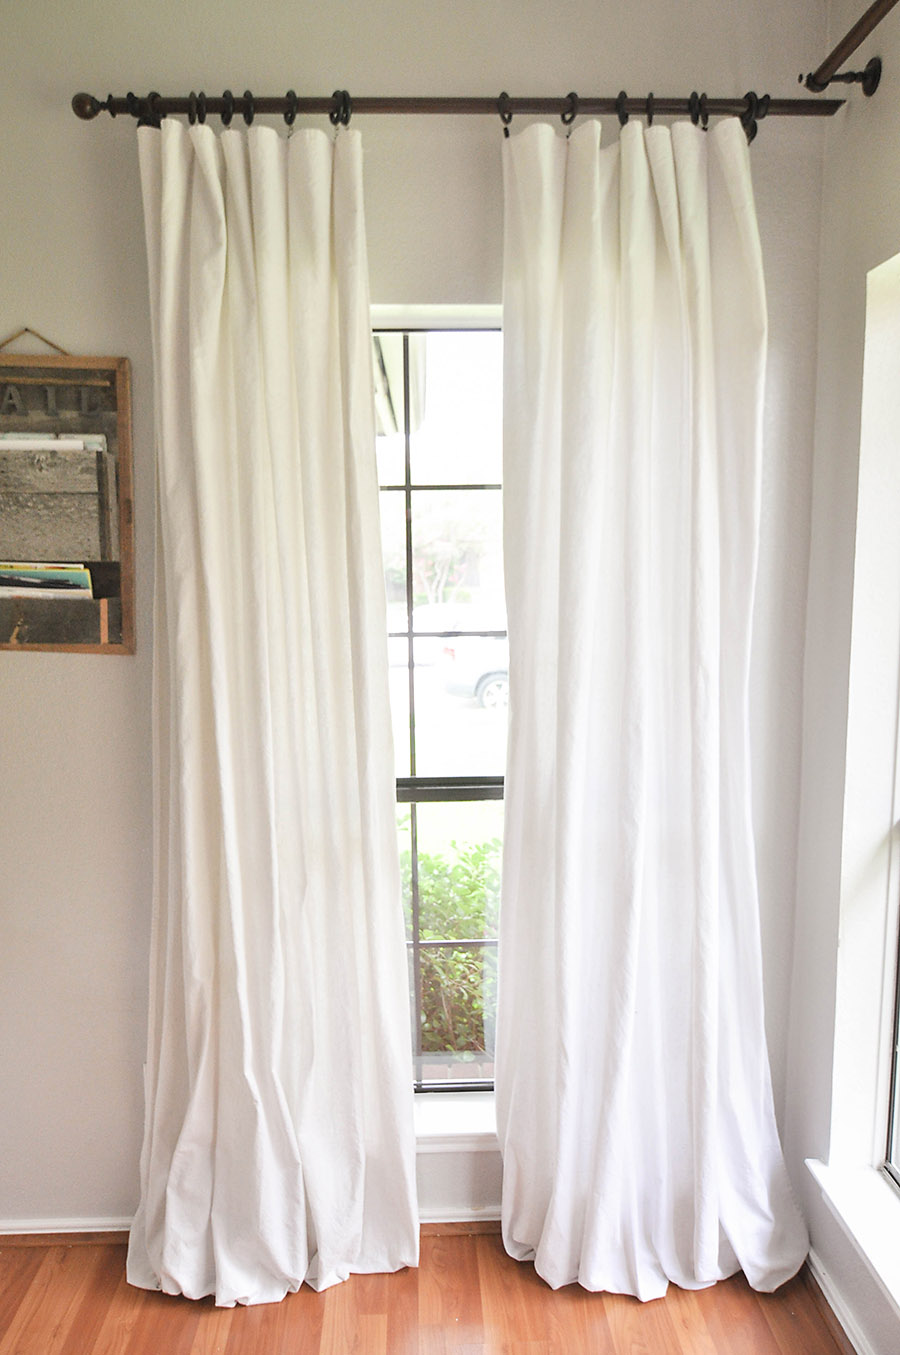 Make Curtains How To Make No Sew Bleached Drop Cloth Curtains Our Handcrafted Life